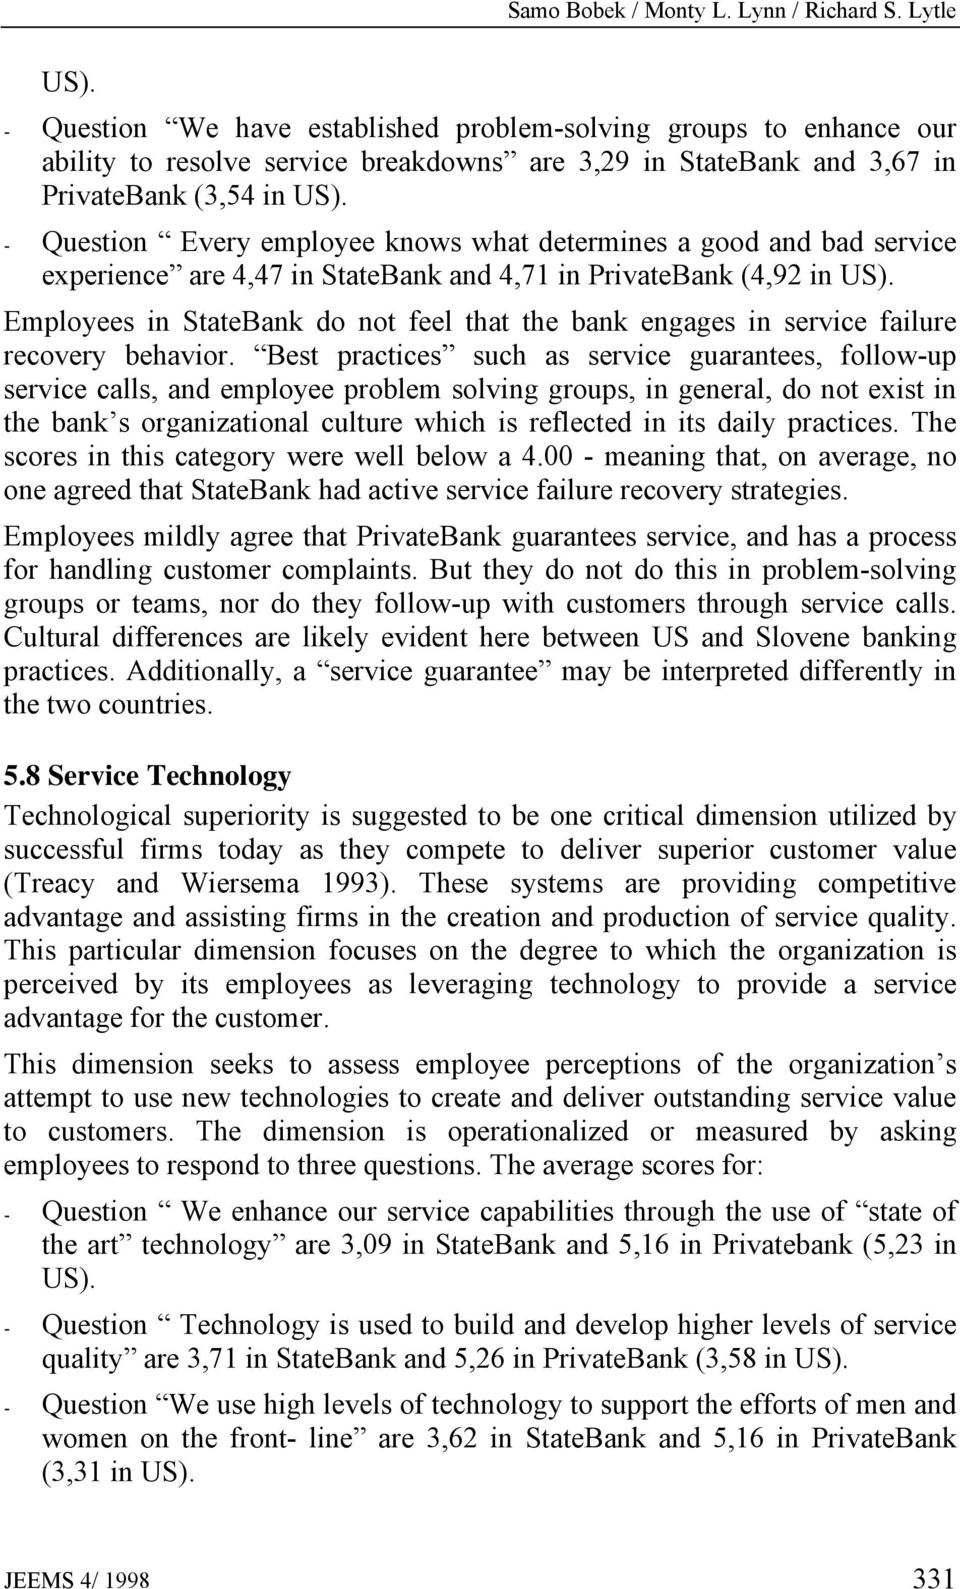 - Question Every employee knows what determines a good and bad service experience are 4,47 in StateBank and 4,71 in PrivateBank (4,92 in US).